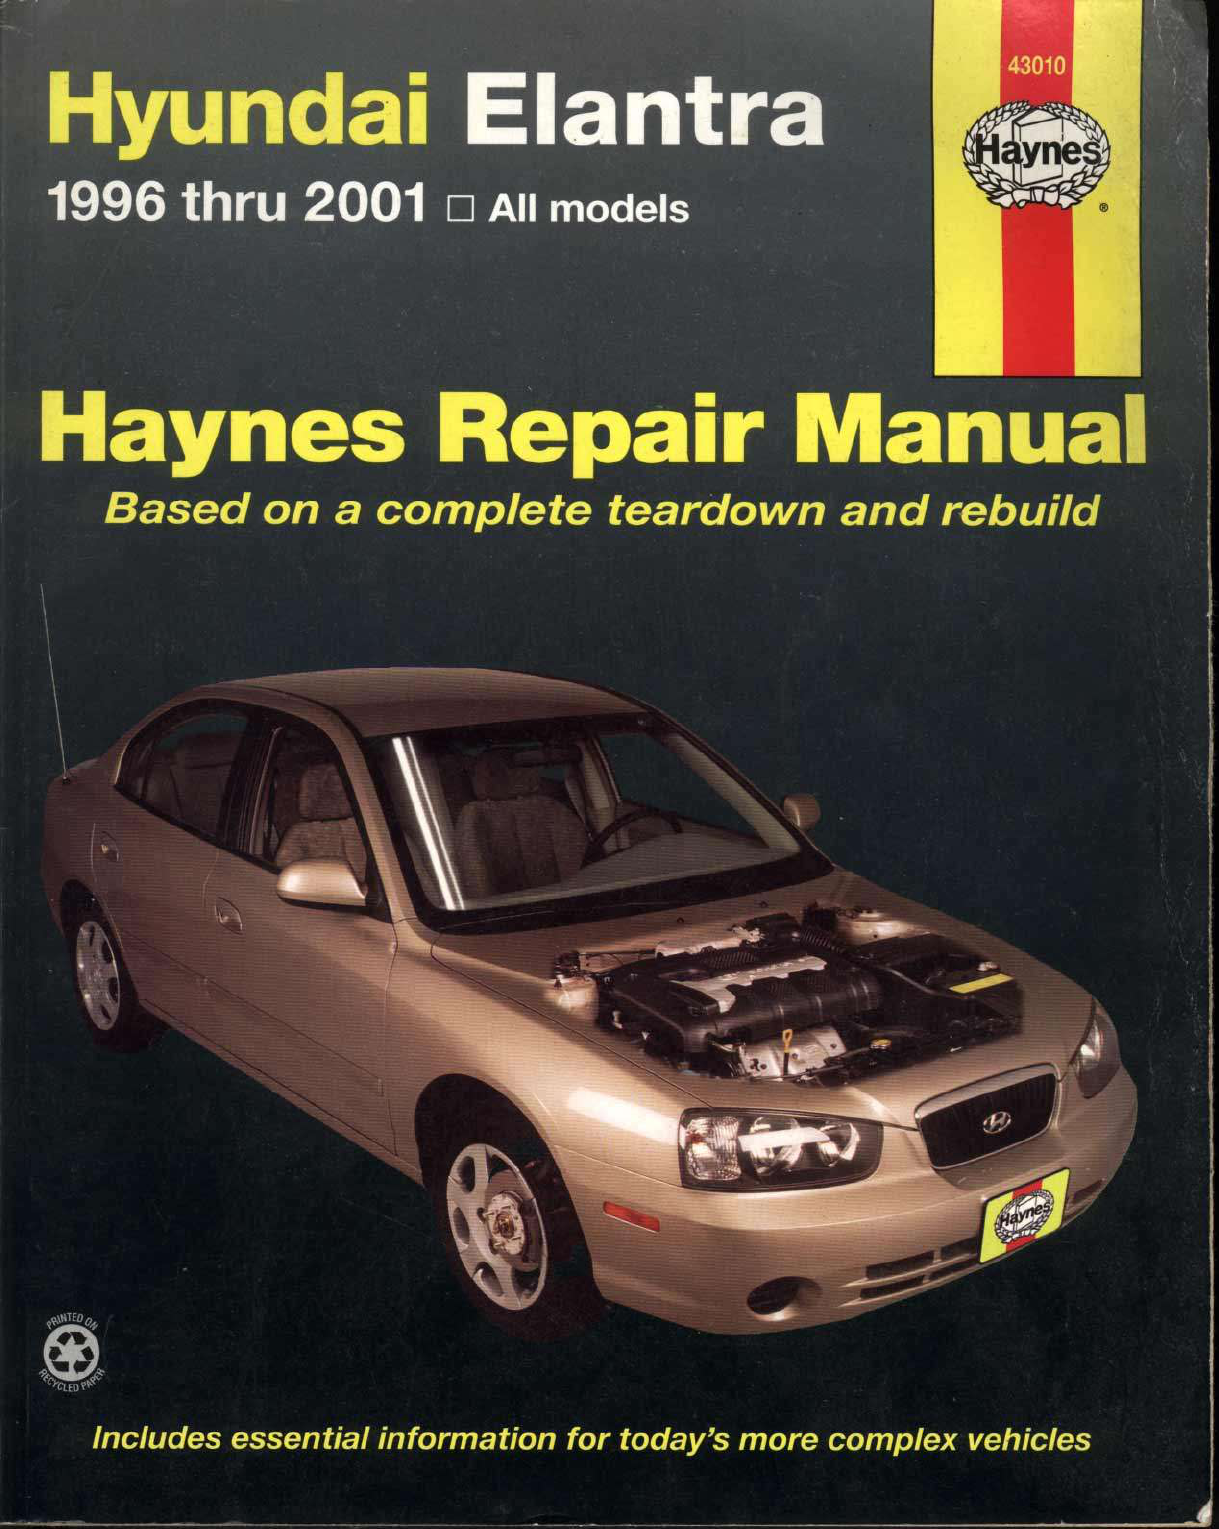 Free download Hyundai Elantra 1996-2001 Haynes Owners Service & Repair Manual  PDF scr1 | repair manual 2001 hyundai elantra | Pinterest | Repair manuals  and ...